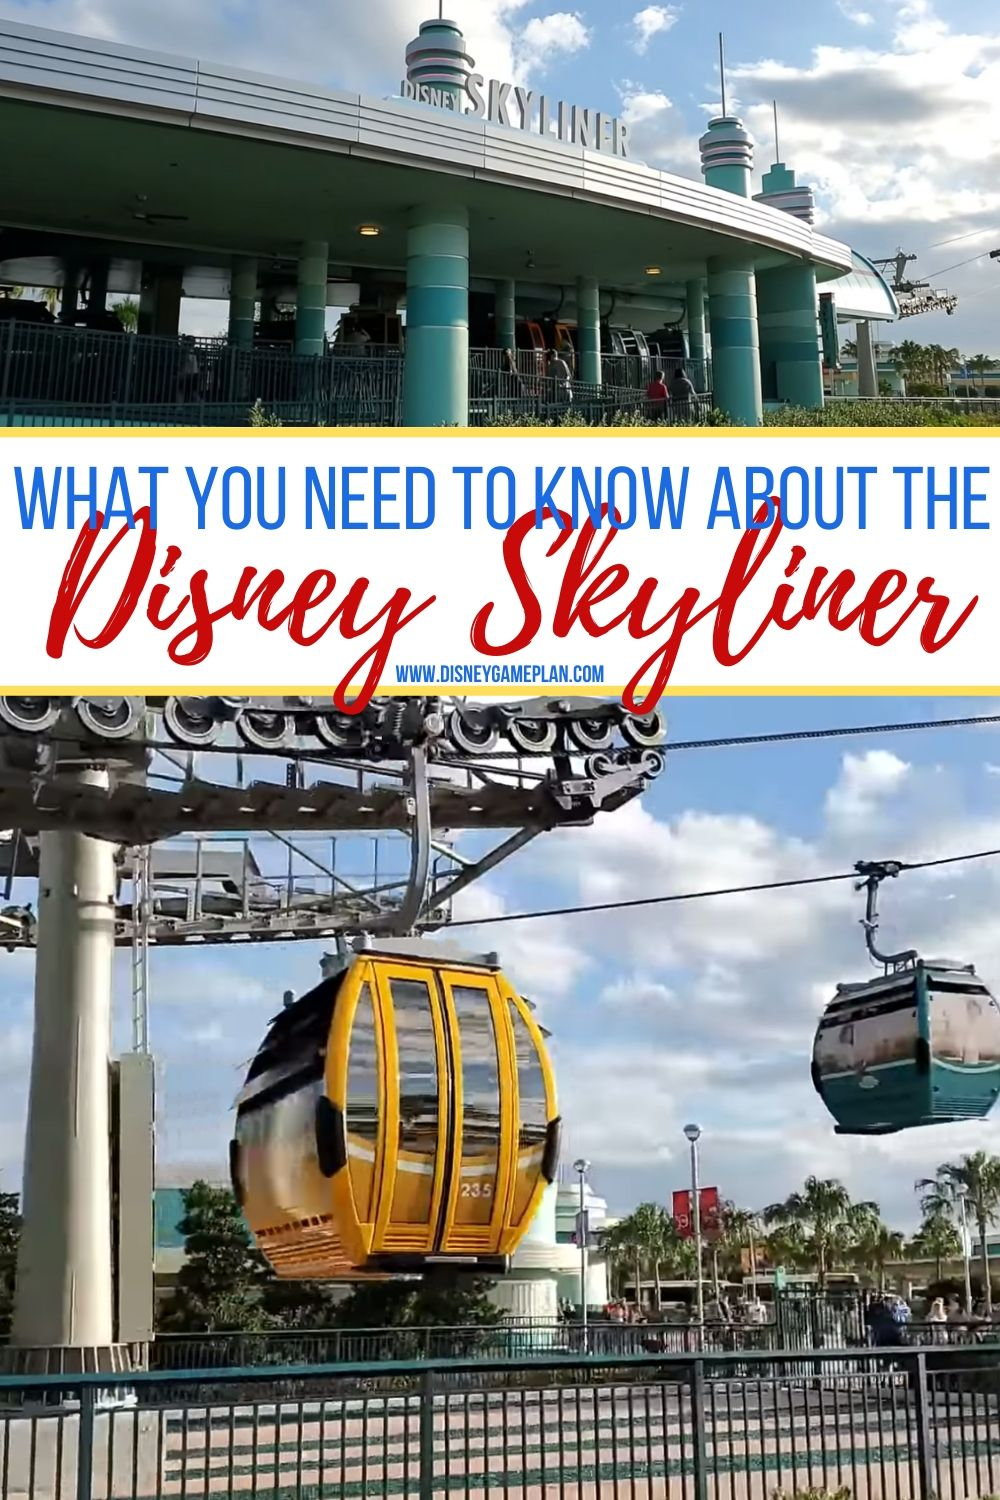 The Disney Skyline is the newest form of transportation at Walt Disney World. Here are some things you should know about the Skyliner before you visit Walt Disney World including where it stops and how fast it goes. Check out this post for helpful Disney Planning Tips. #disneytips #disneyworld #disneyplanning #disneyhacks